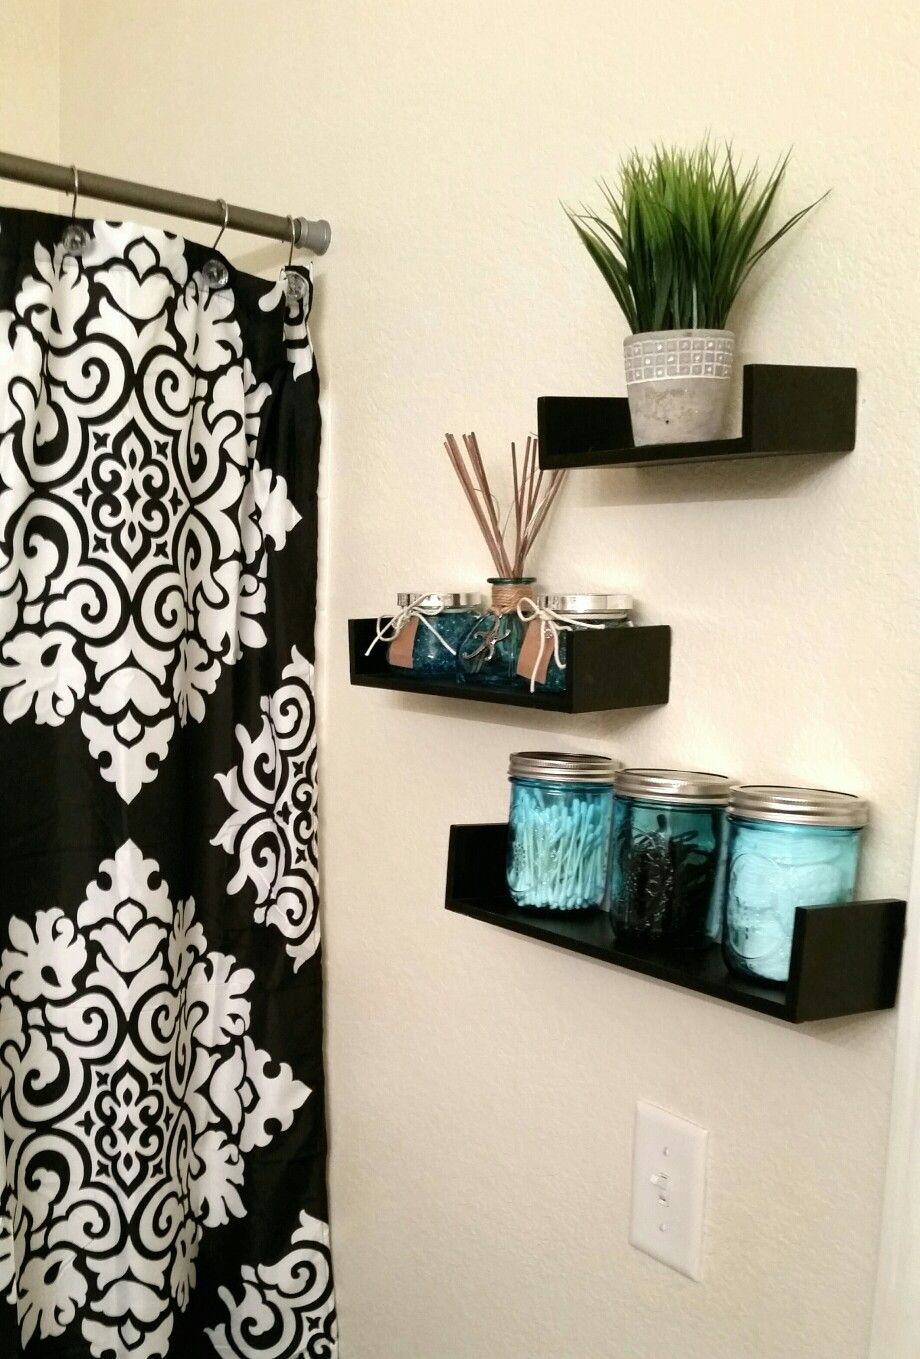 my daughteru0027s college apartment bathroom shelf wall donebyk bathrooms l31 bathrooms